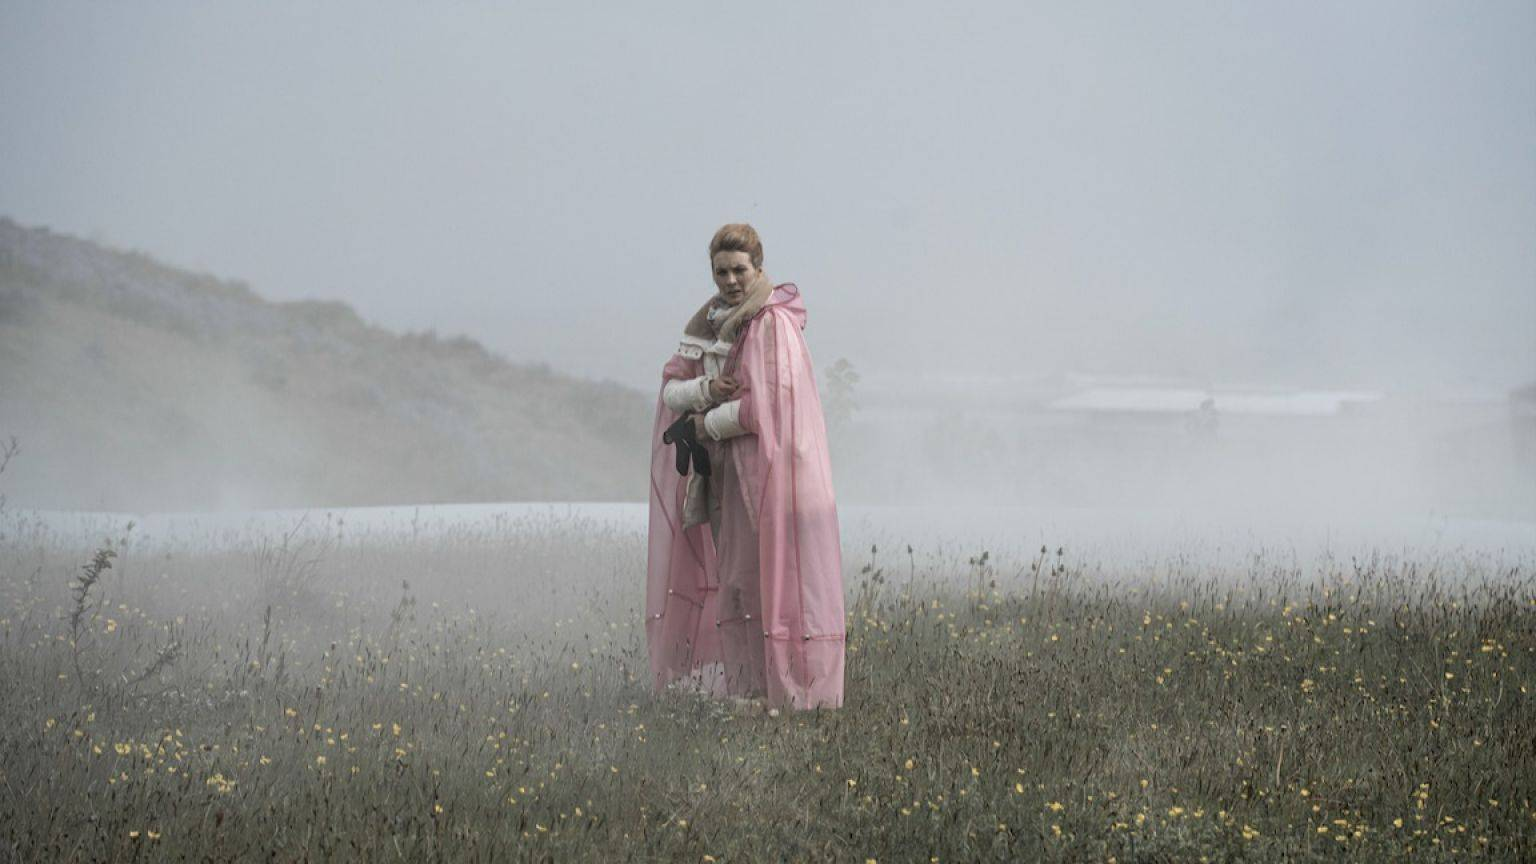 Netflix shares teaser and first images of mysterious Icelandic drama series  'Katla' - Paudal - Paudal